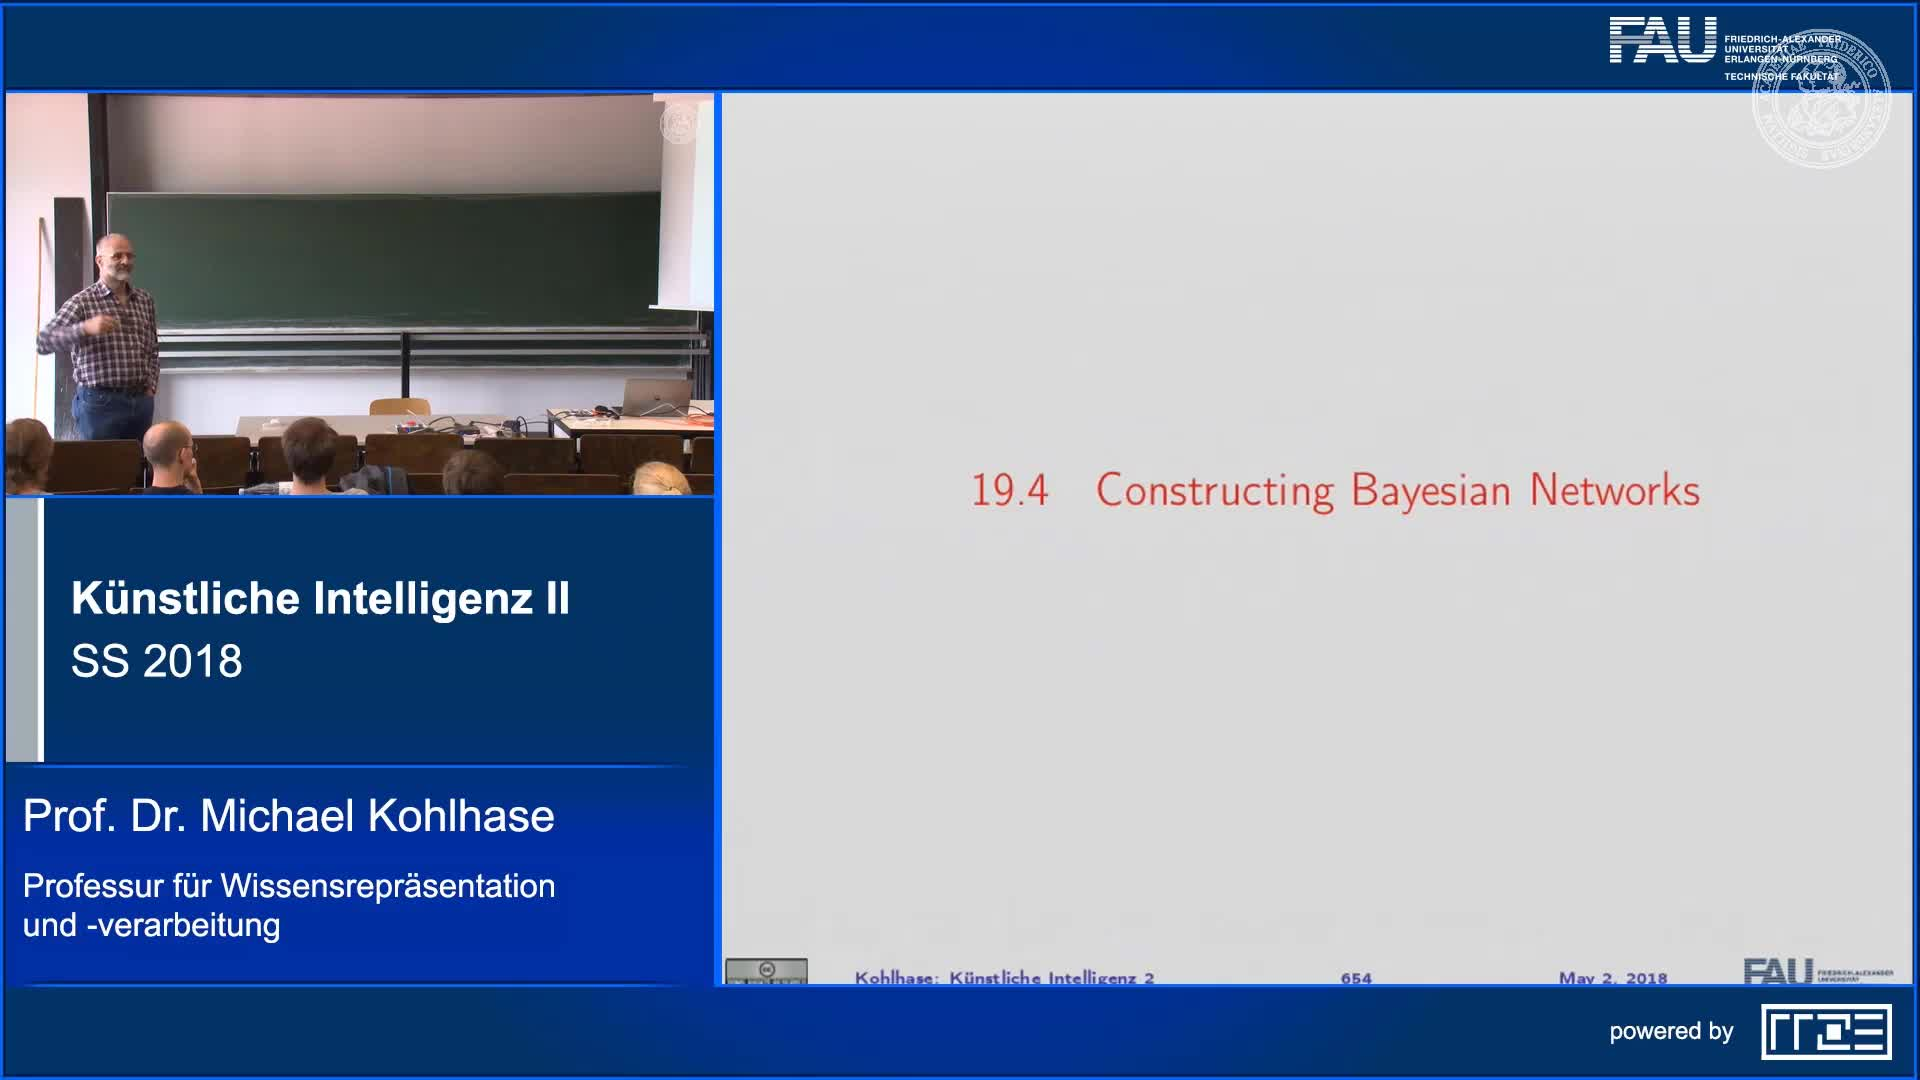 21.4. Constructing Bayesian Networks (Part 1) preview image